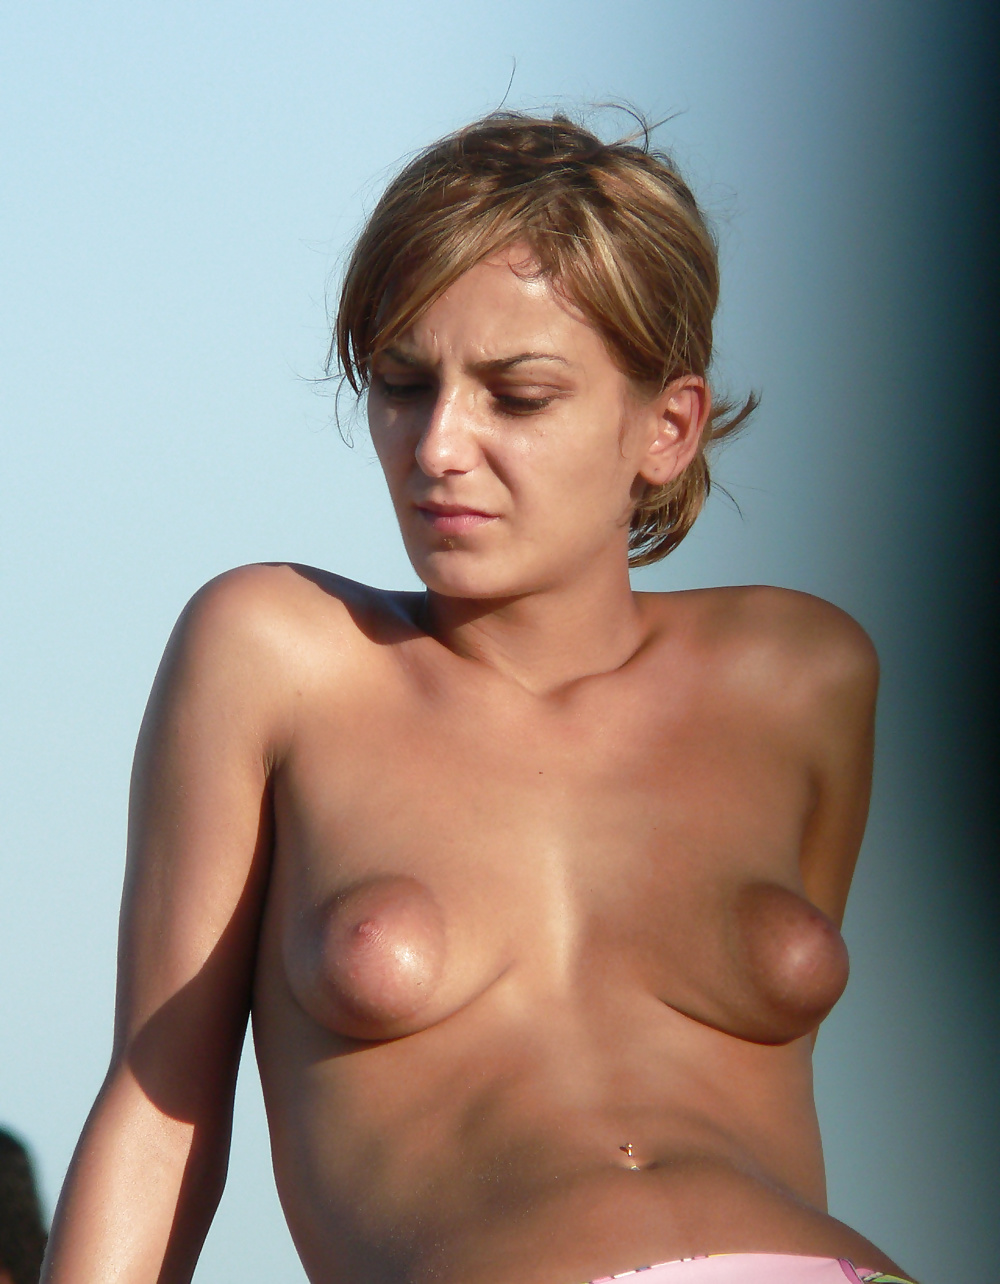 Puffy nipple nudist pics, salman khan katrina kaif nude